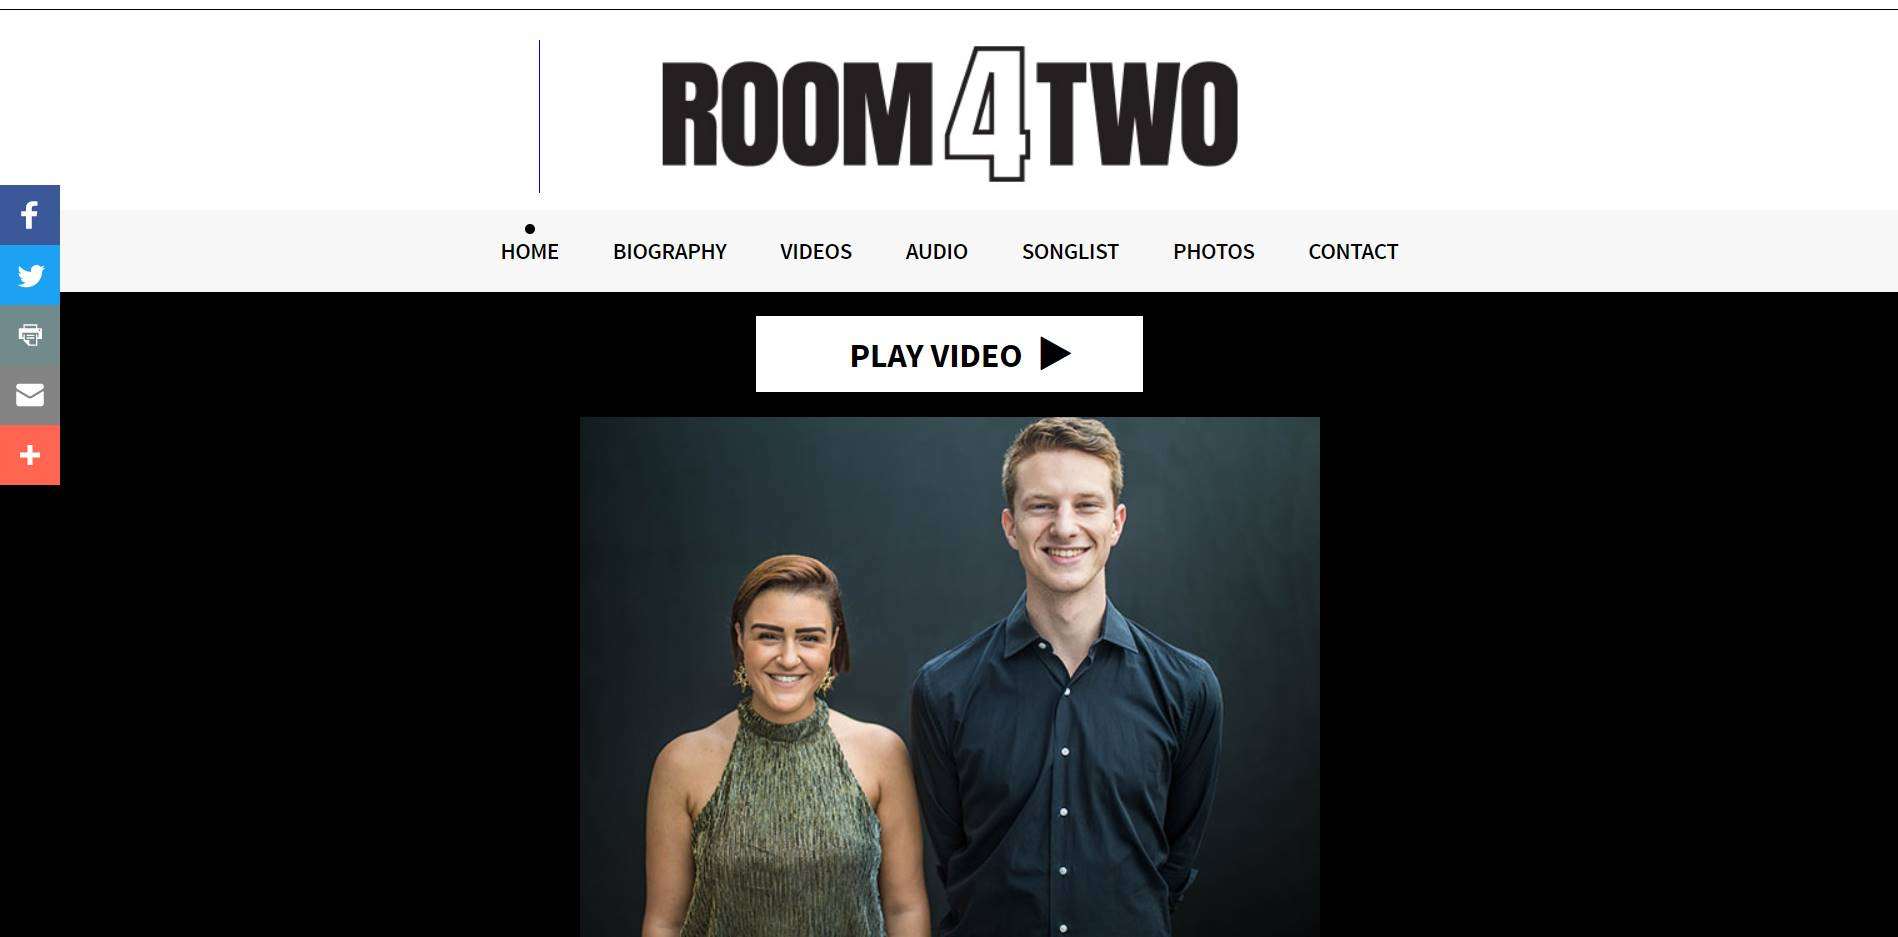 room 4 two